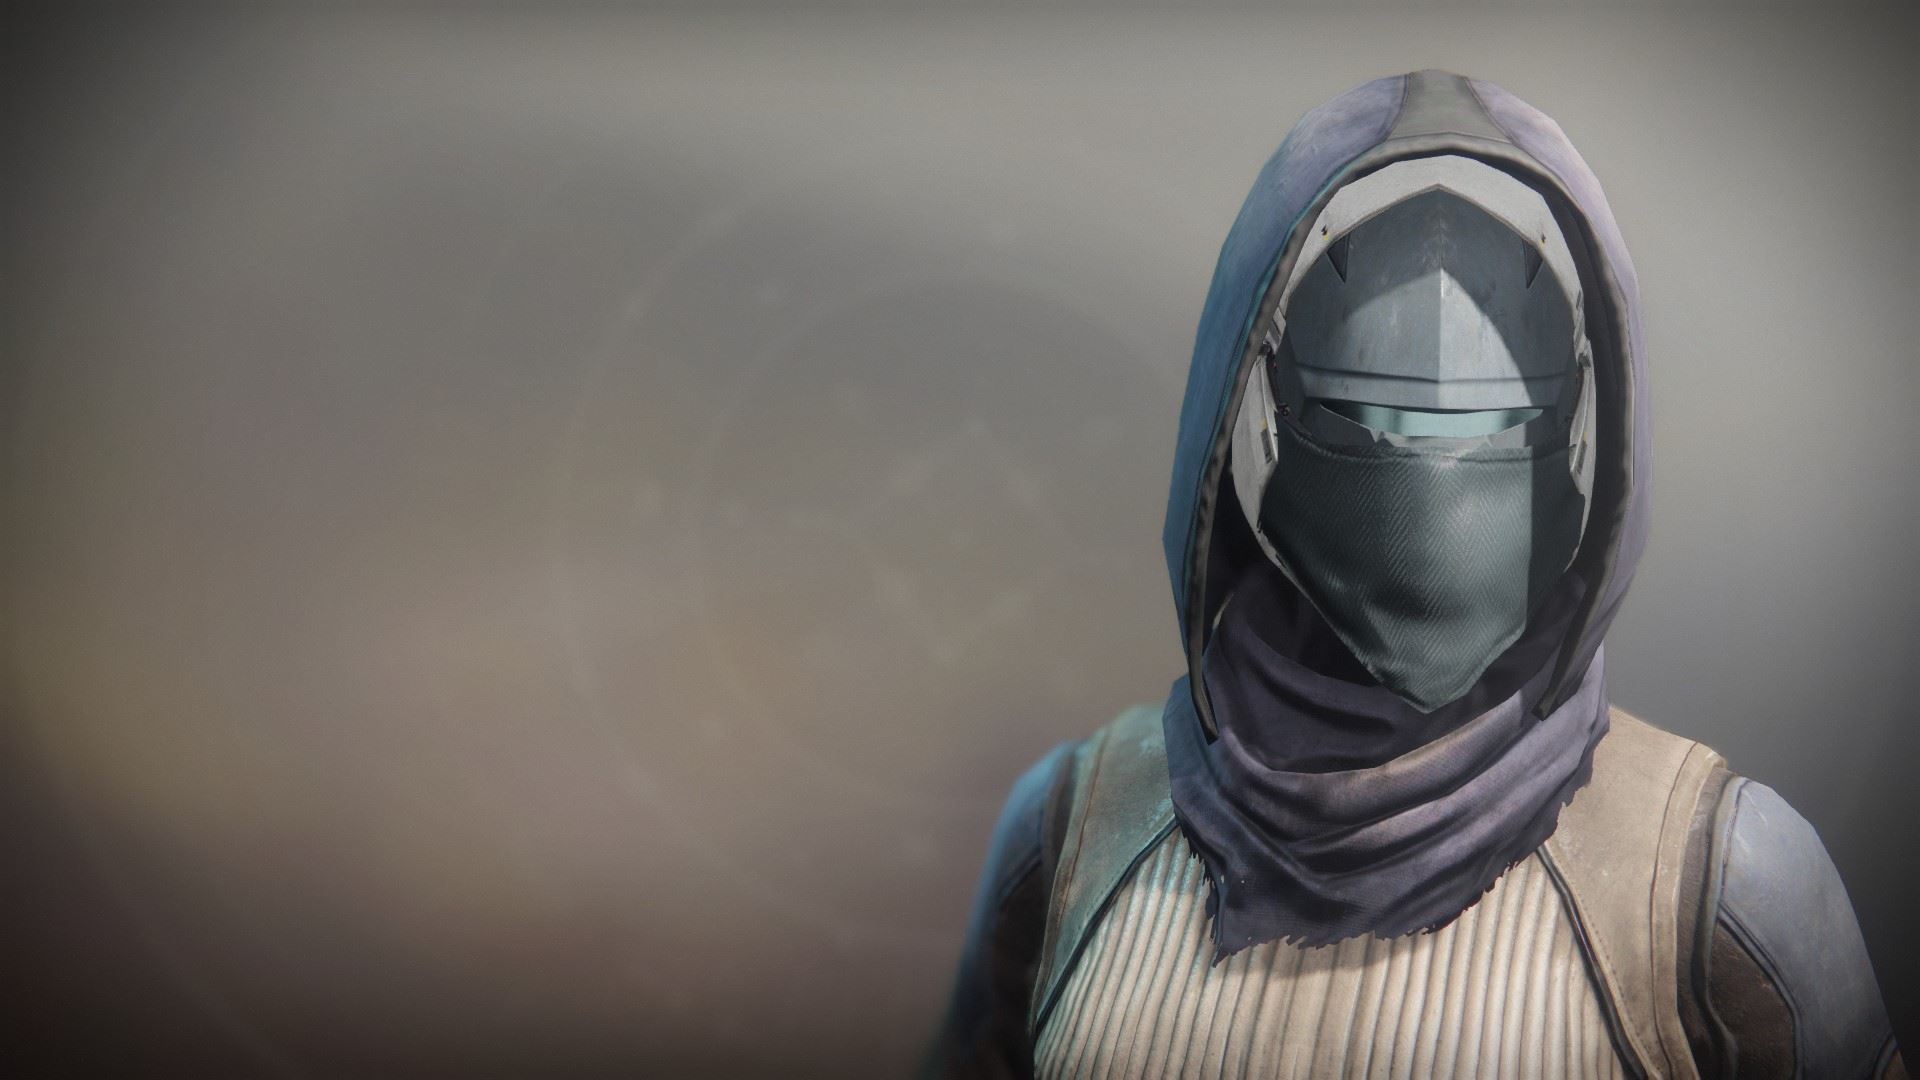 An in-game render of the Solstice Mask (Scorched).